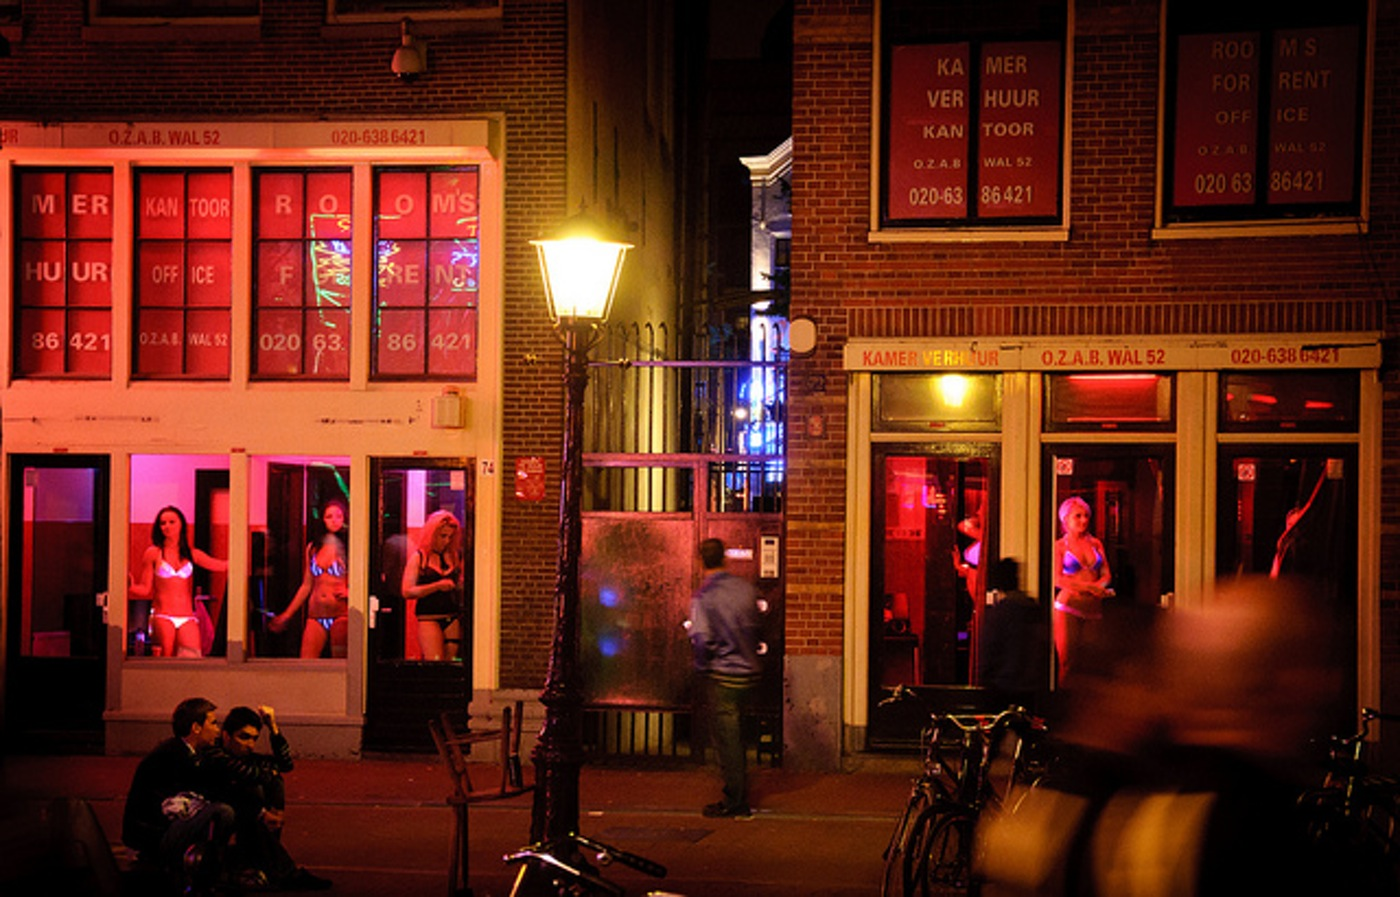 Red Light District em Amsterdam | foto: triip.me